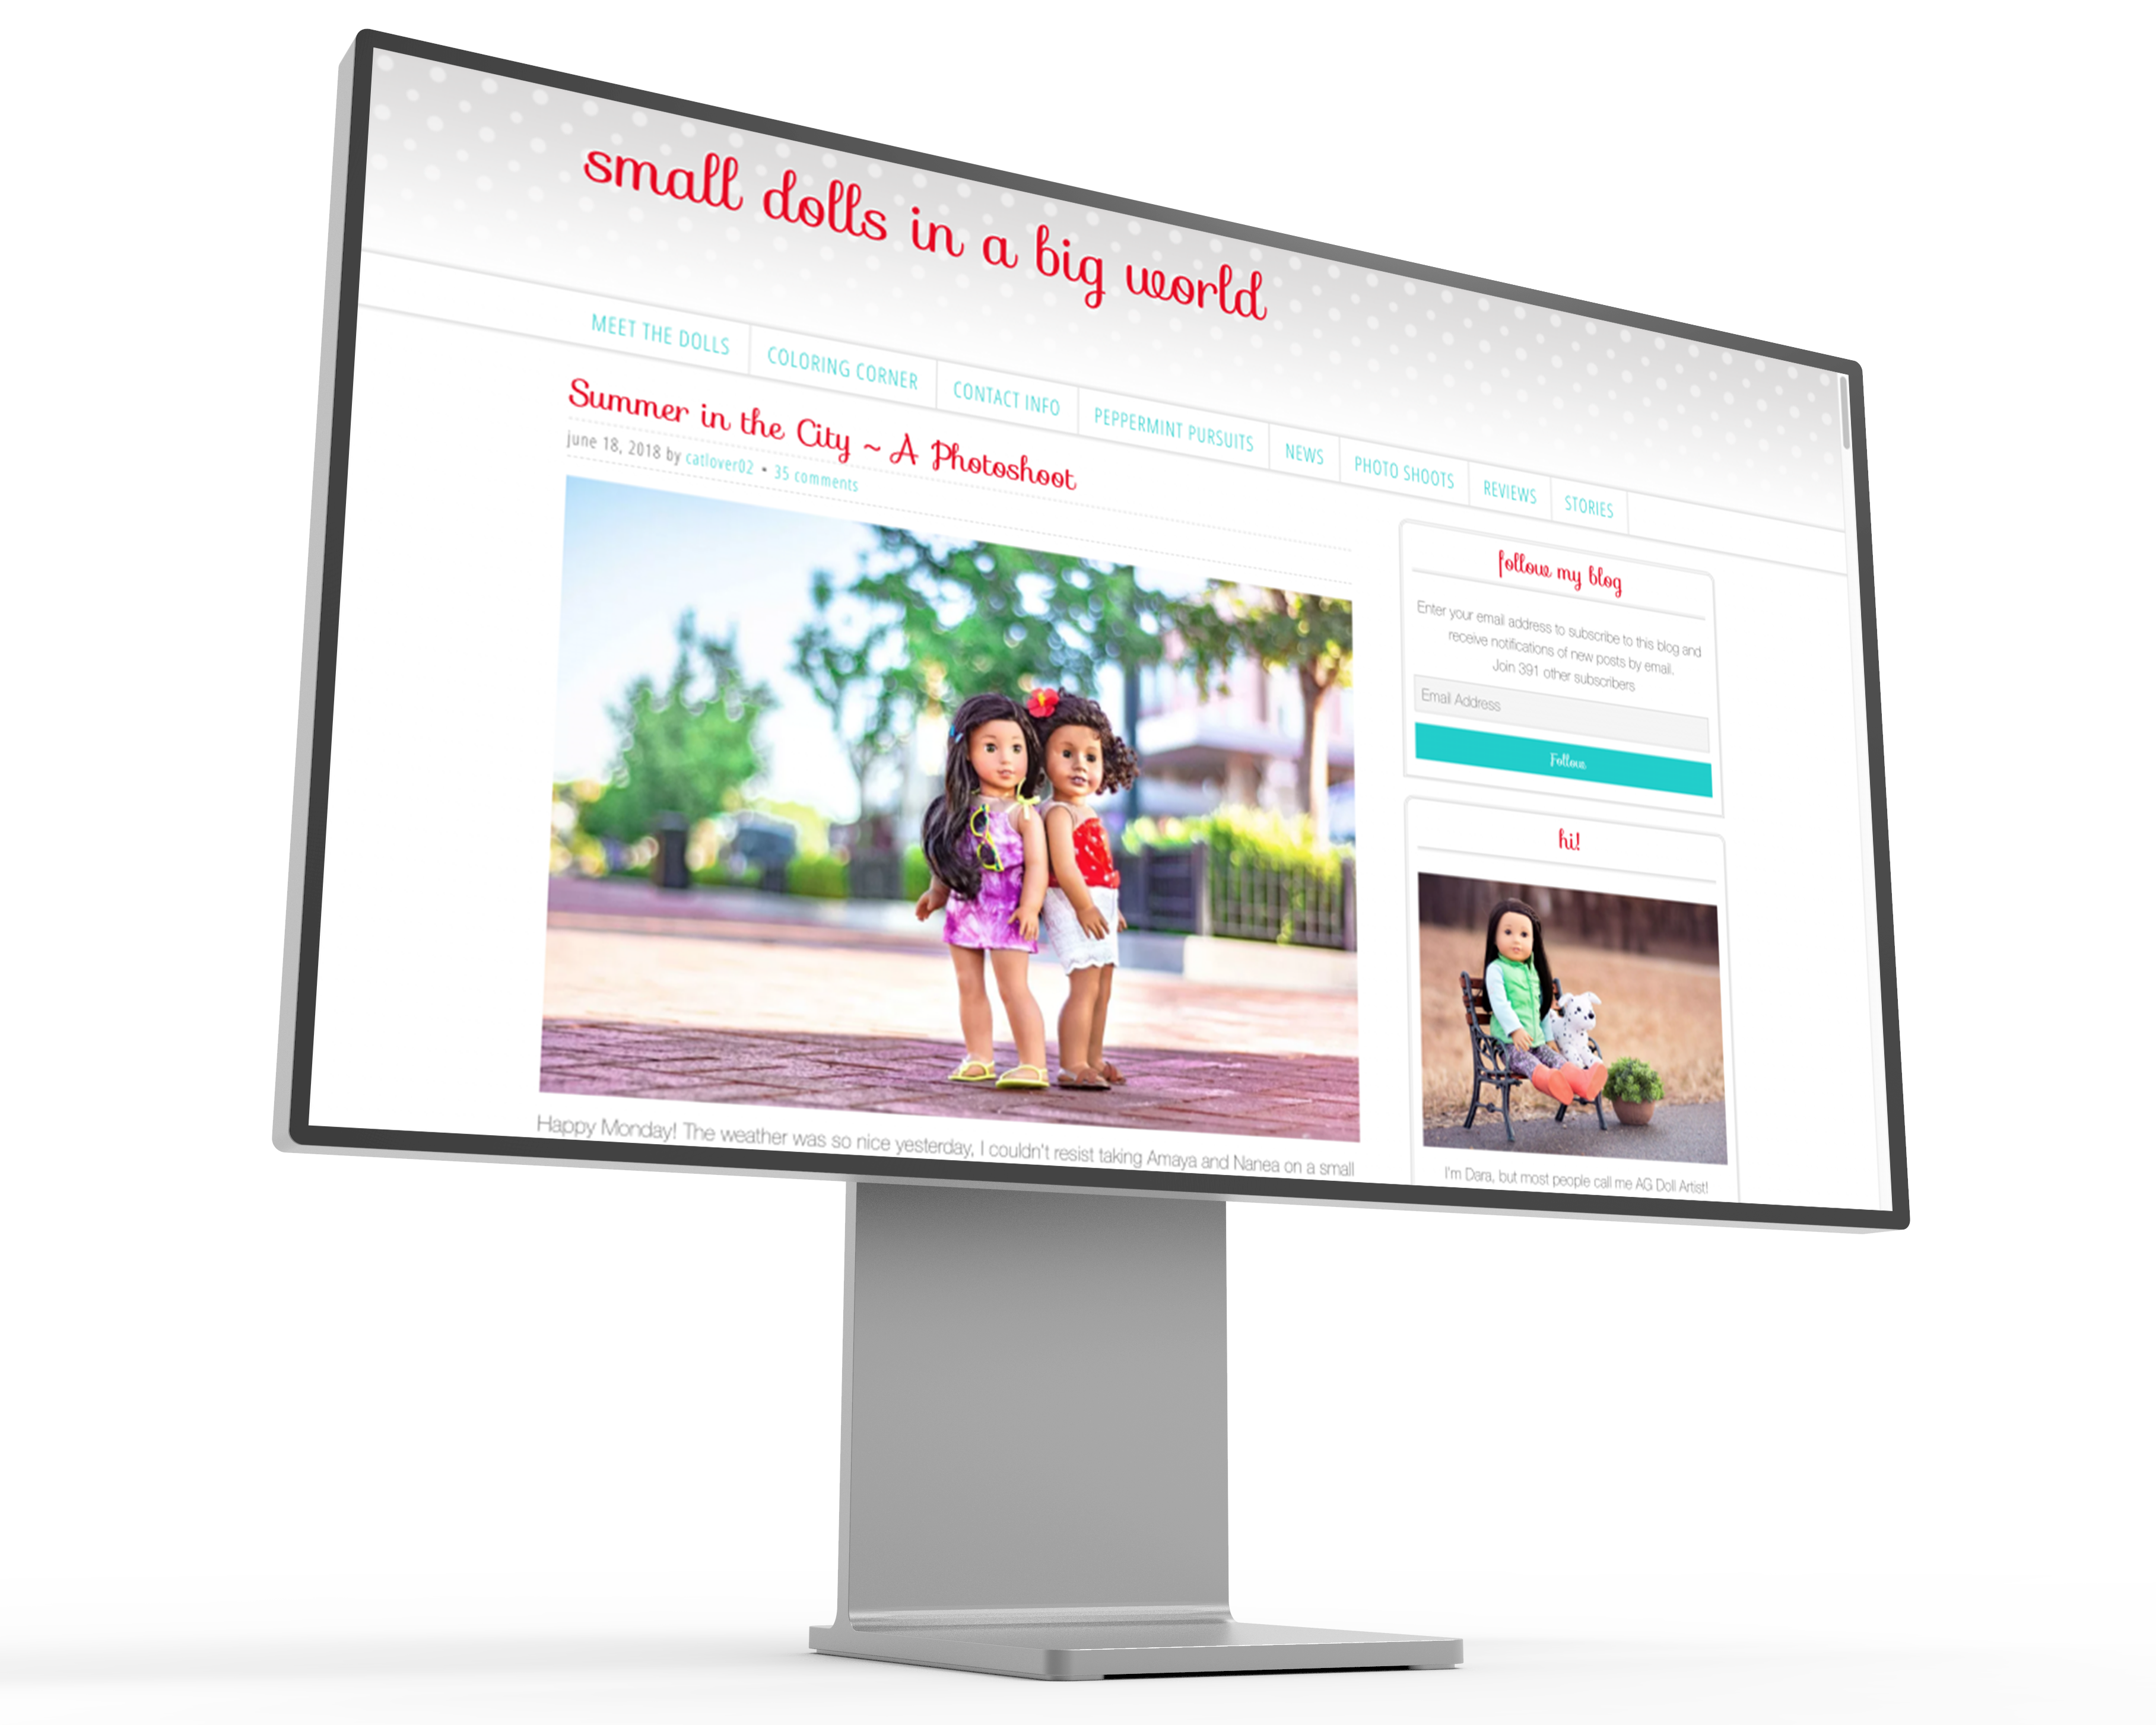 Image of the Small Dolls in a Big World website displayed on a mockup of a Pro XDR Display.